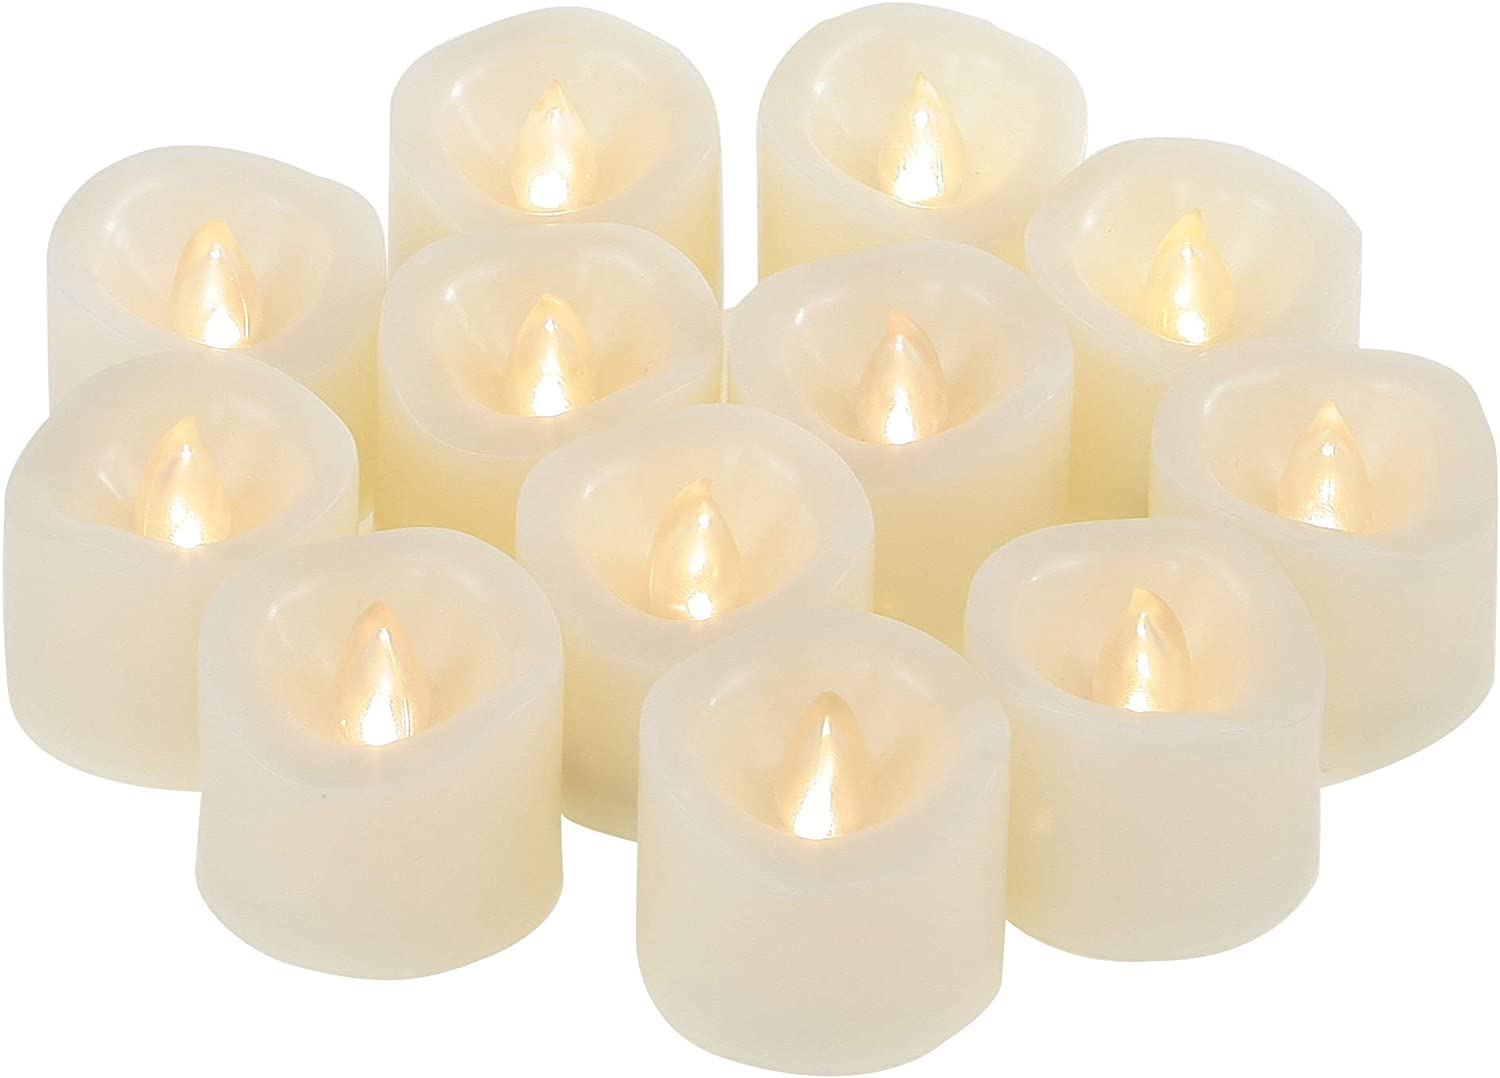 12 PCS Small Round Unscented Cream White Fake Flickering Battery Operated Powered Electric Flameless LED Tea Lights Tealight Votives Candles Bulk Set Lot Baptism Party Wedding Decorations Decor Gifts